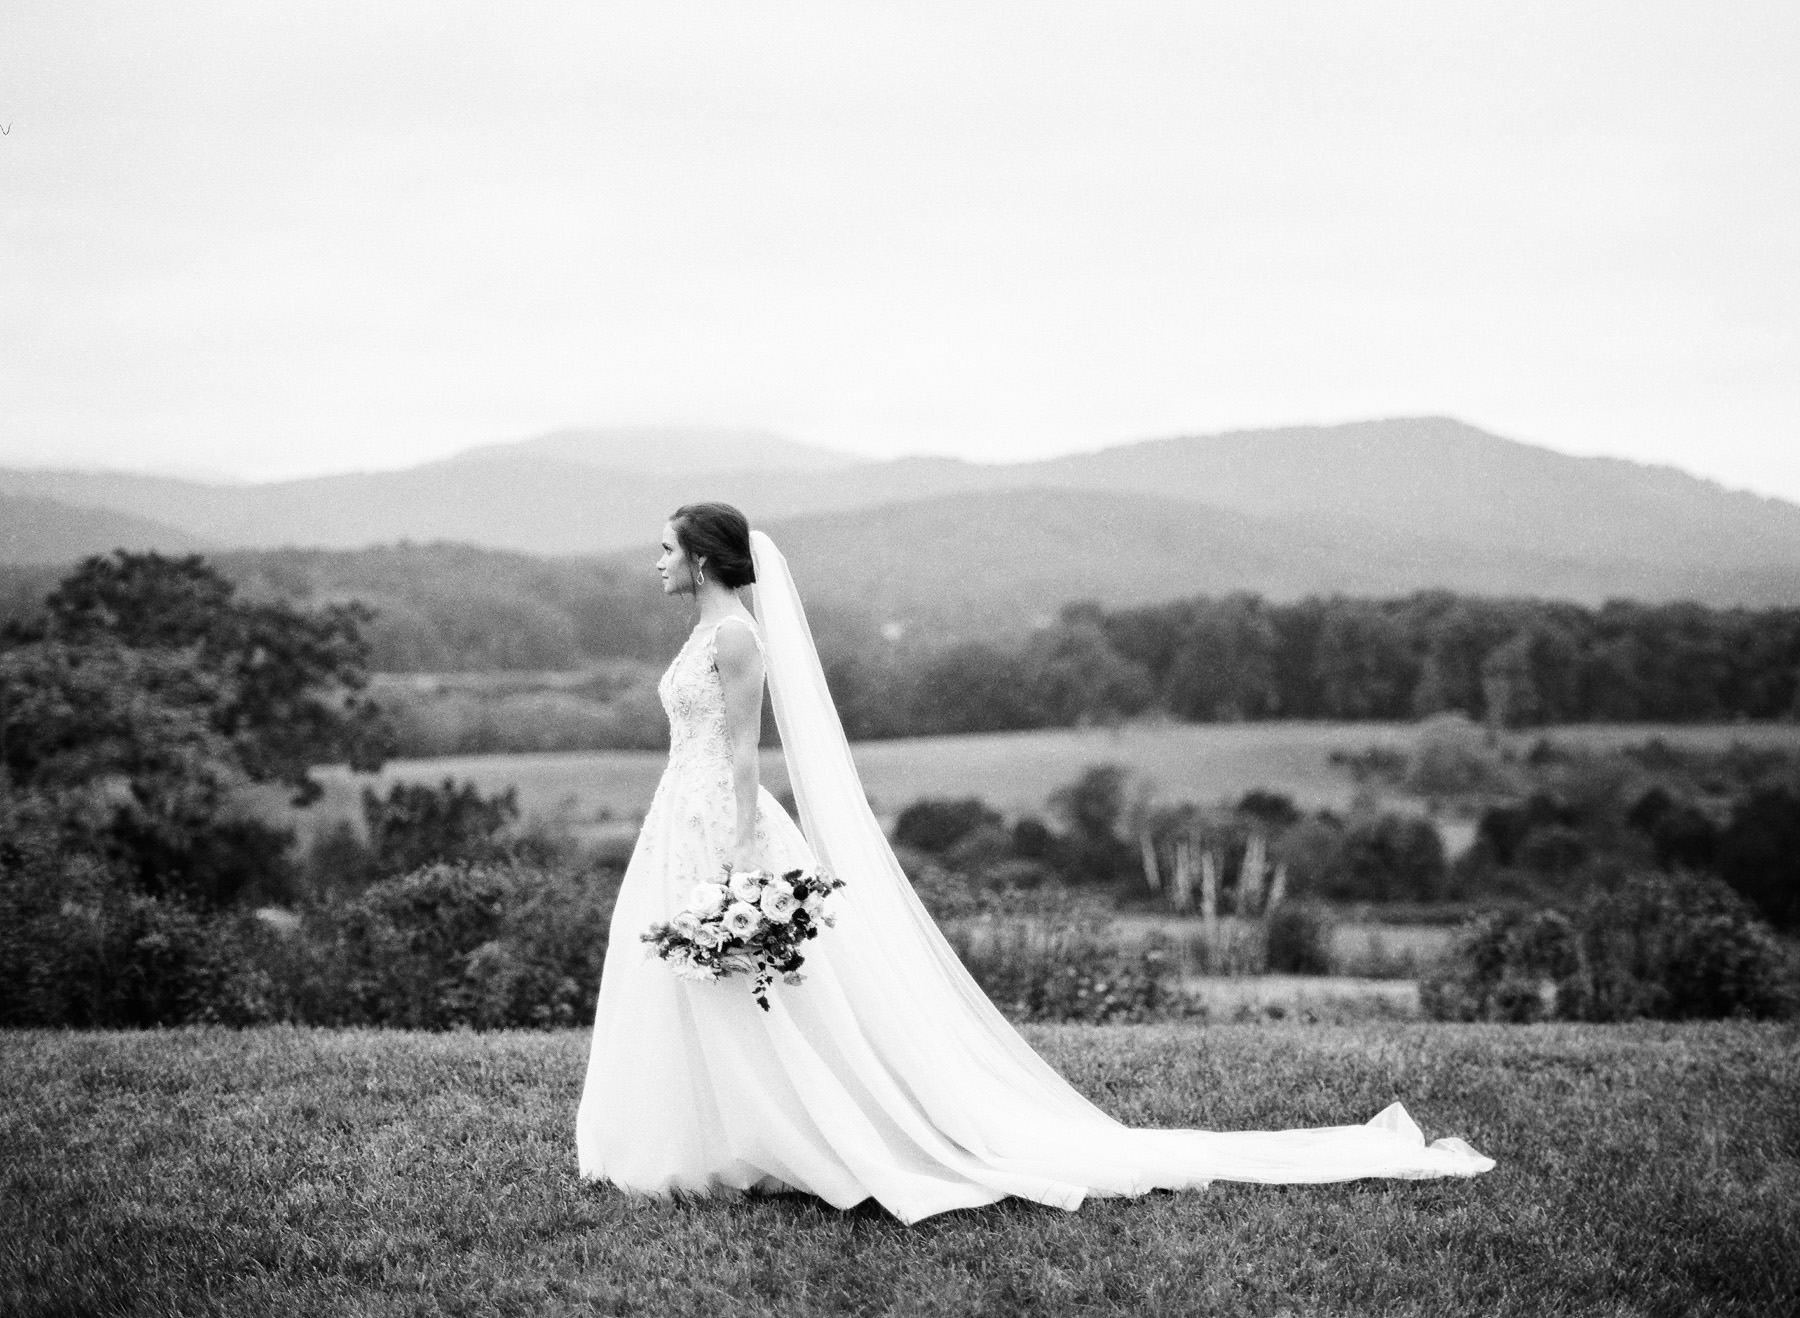 Pippin-Hill-Farm-and-Vinyards-Wedding-Film-Photography-05.jpg